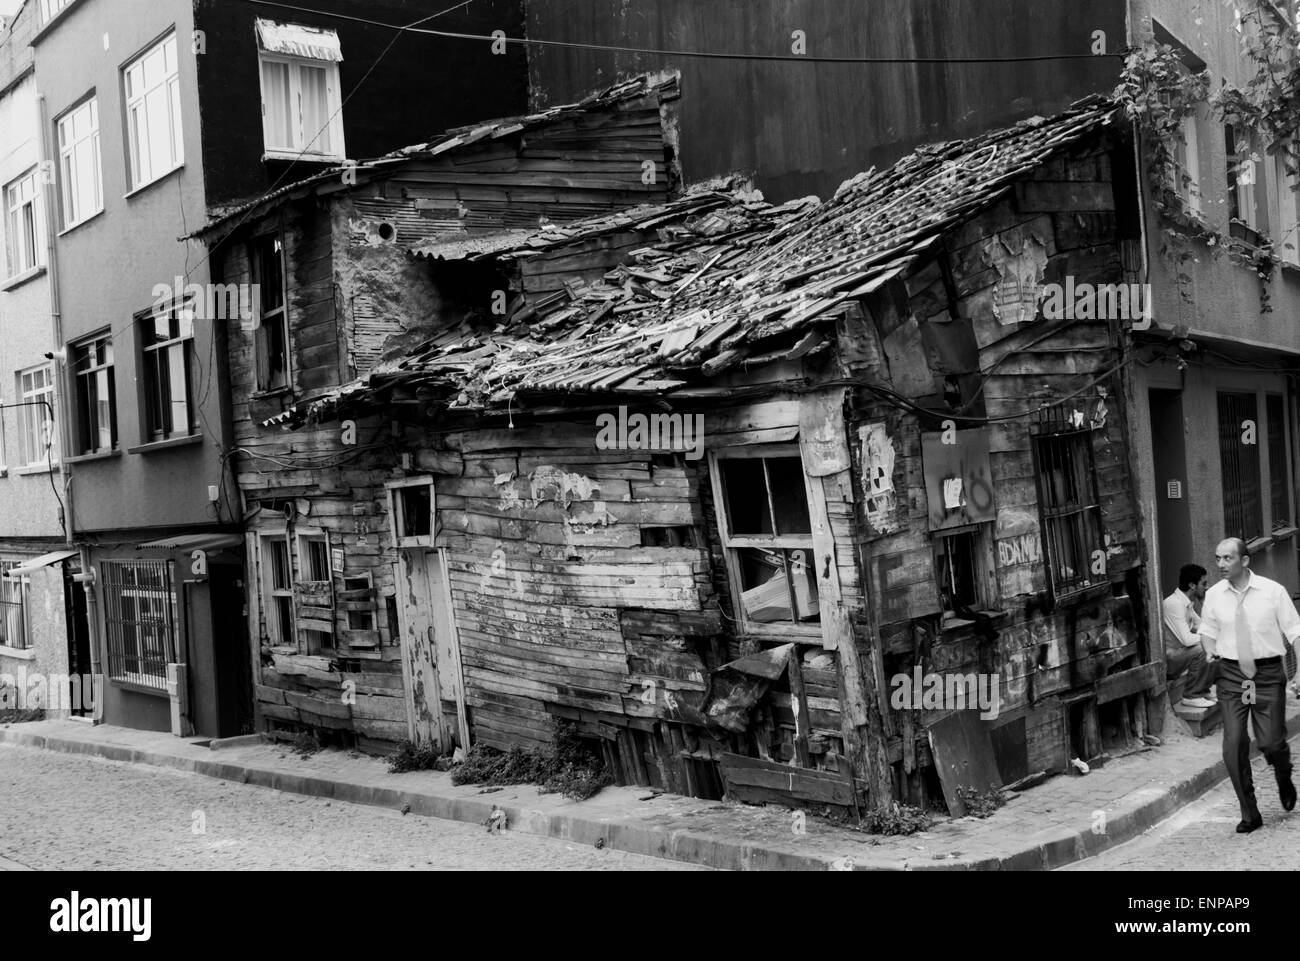 A decrepit shack wedged into the corner of a modern row of buildings in downtown Istanbul, Turkey - Stock Image